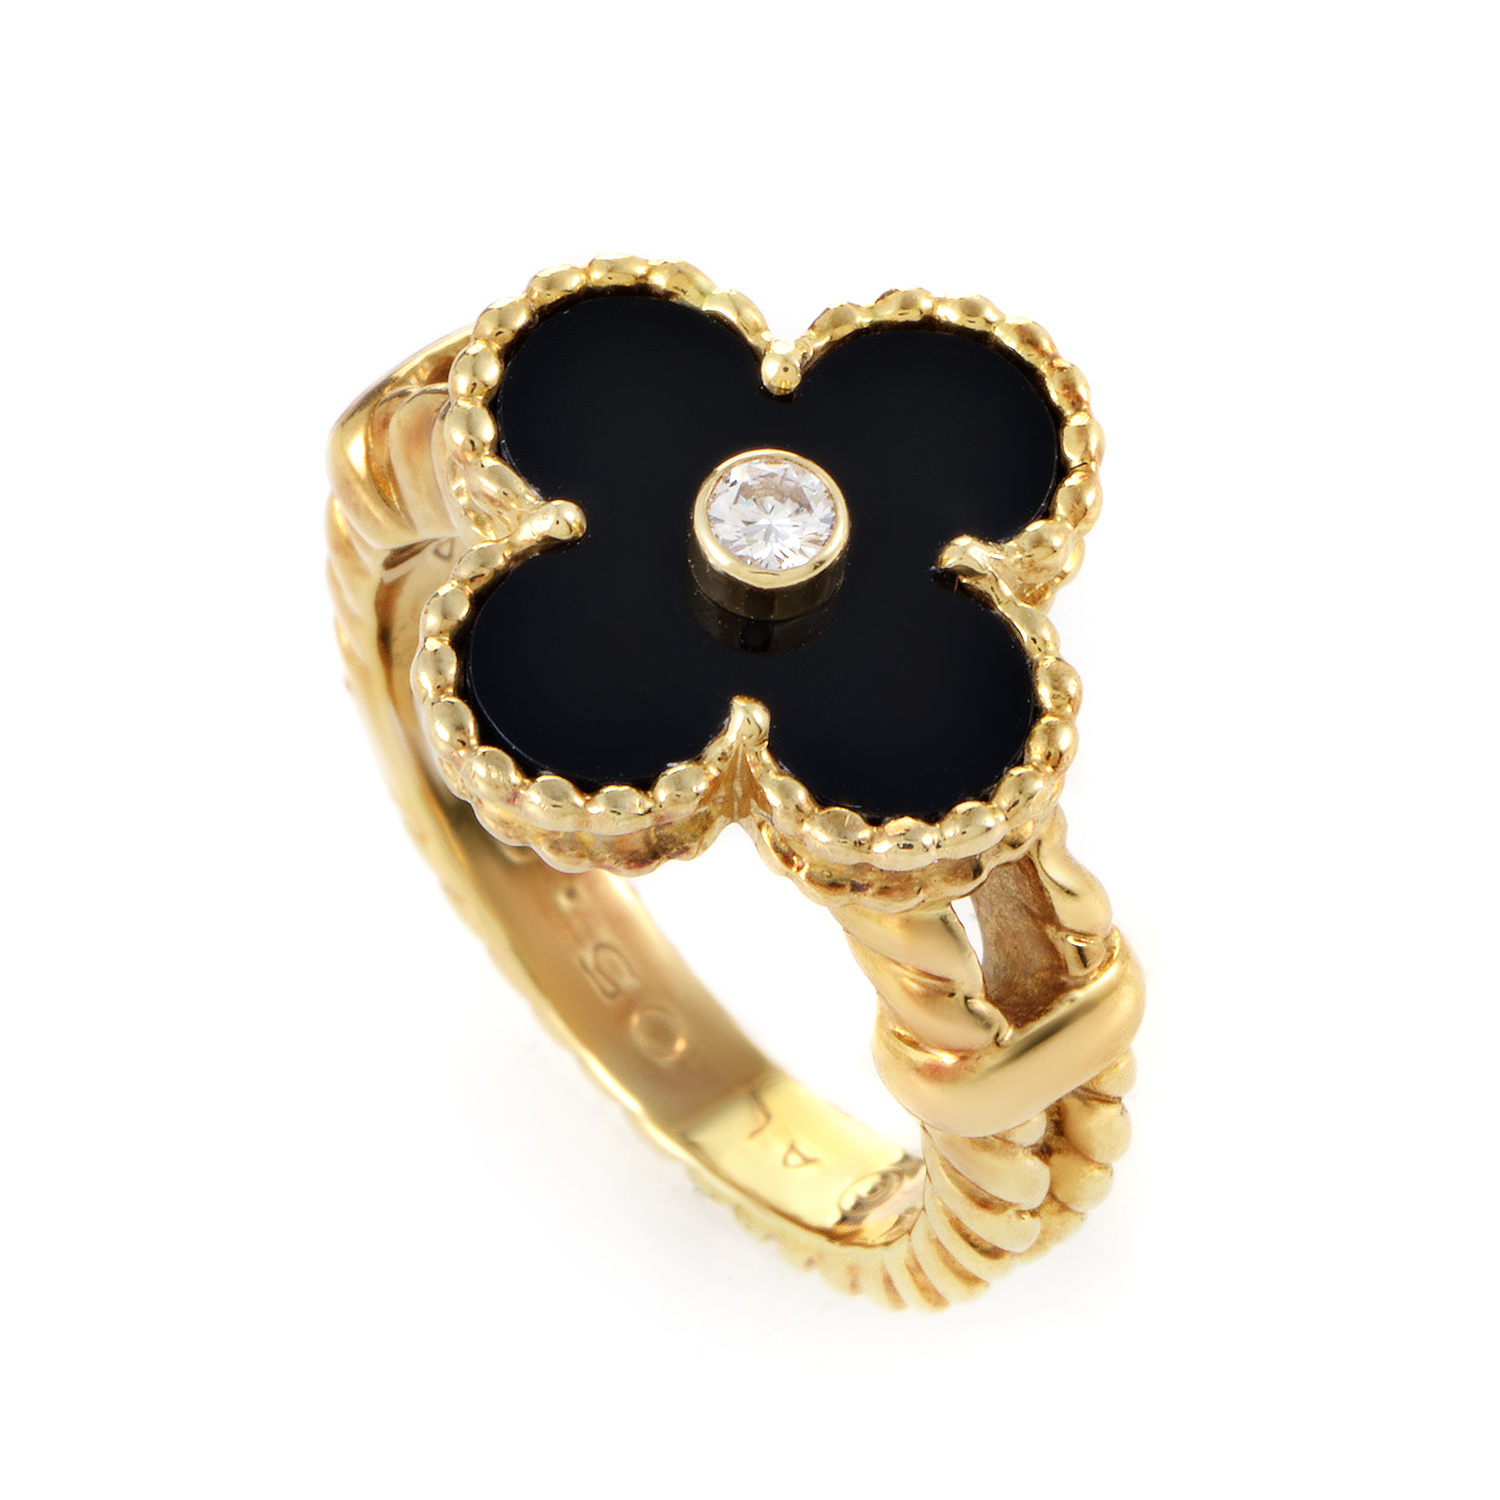 Van Cleef & Arpels Alhambra 18K Yellow Gold Diamond and Onyx Ring